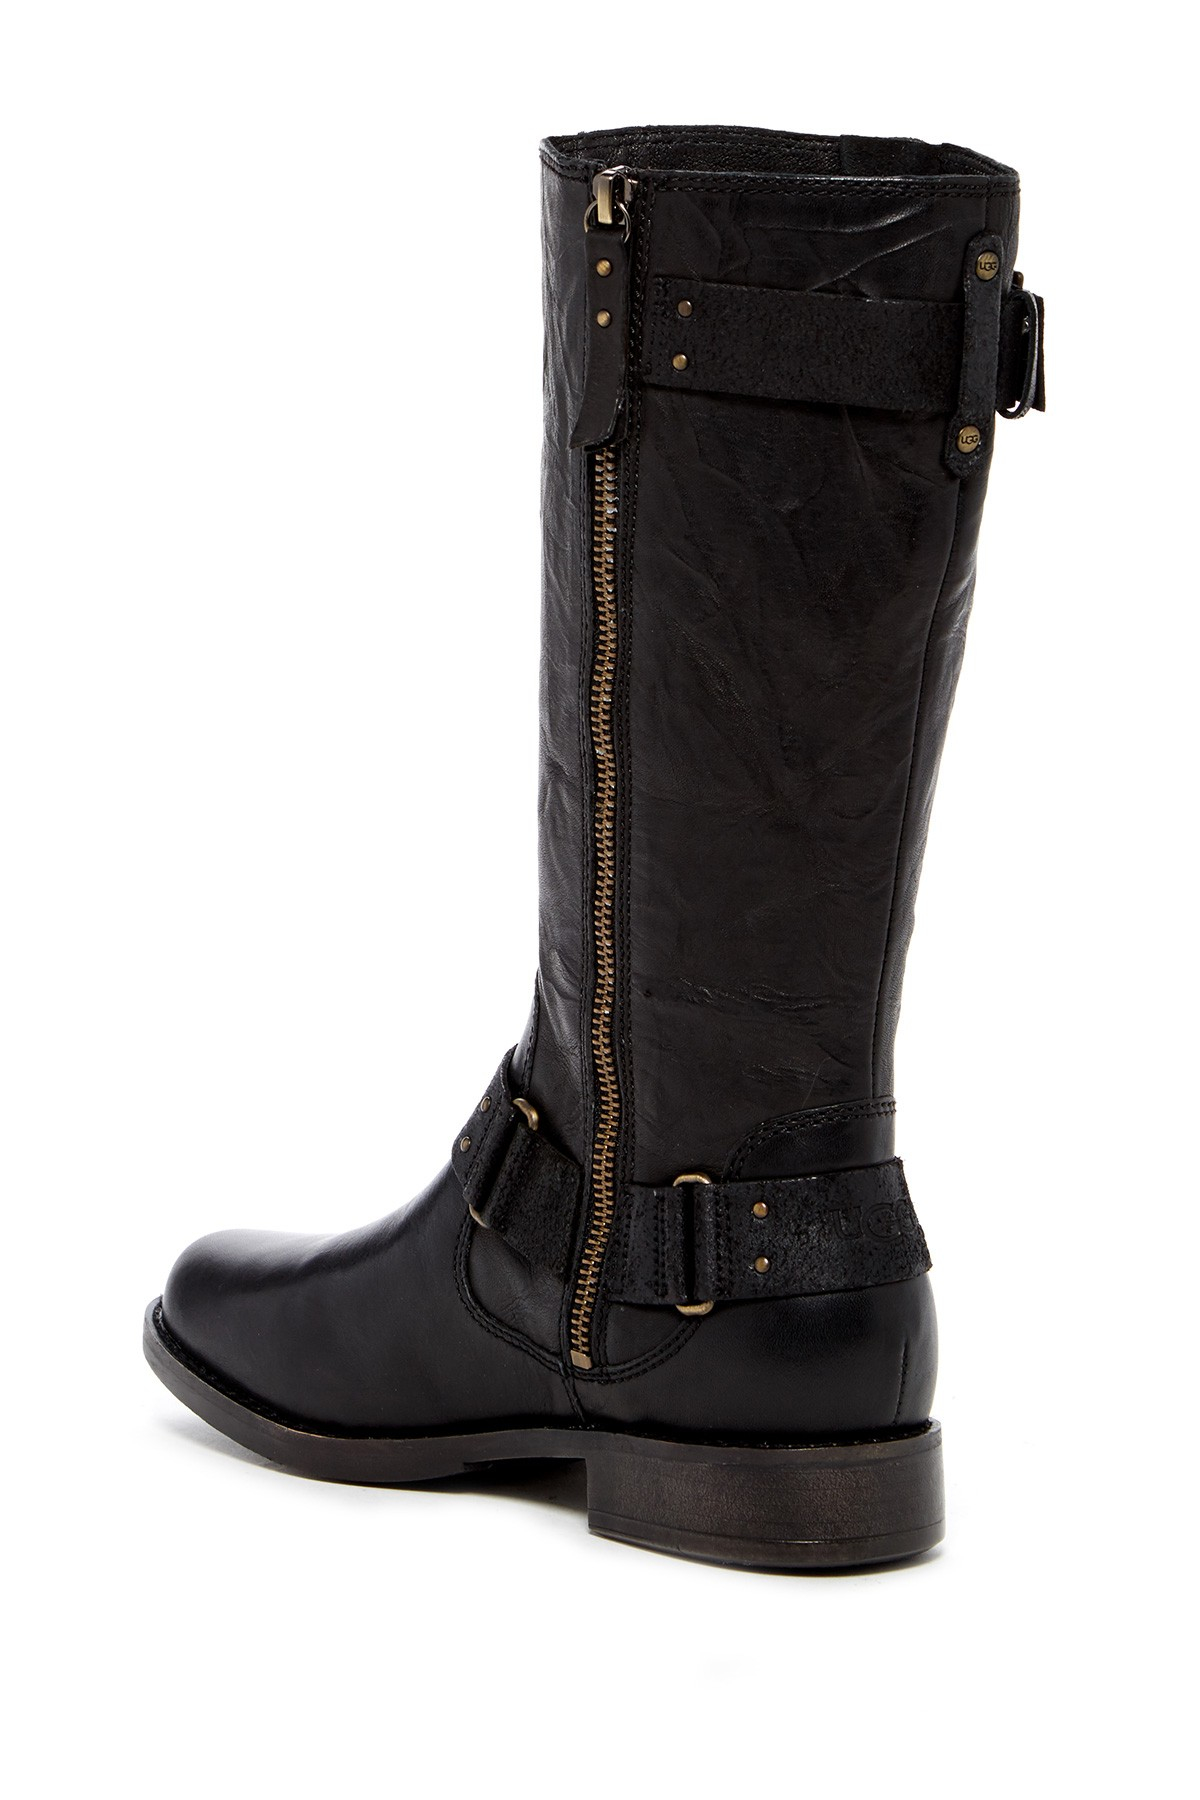 Dec 06,  · ☀ Nordstrom Women S Boots Wide Width Up To 70% ★ ★ ★ Free shipping and returns on [NORDSTROM WOMEN S BOOTS WIDE WIDTH] Find this Season s Must-Have Styles From Top Brands Order Online Today. Shop New Arrivals & Free Shipping!.